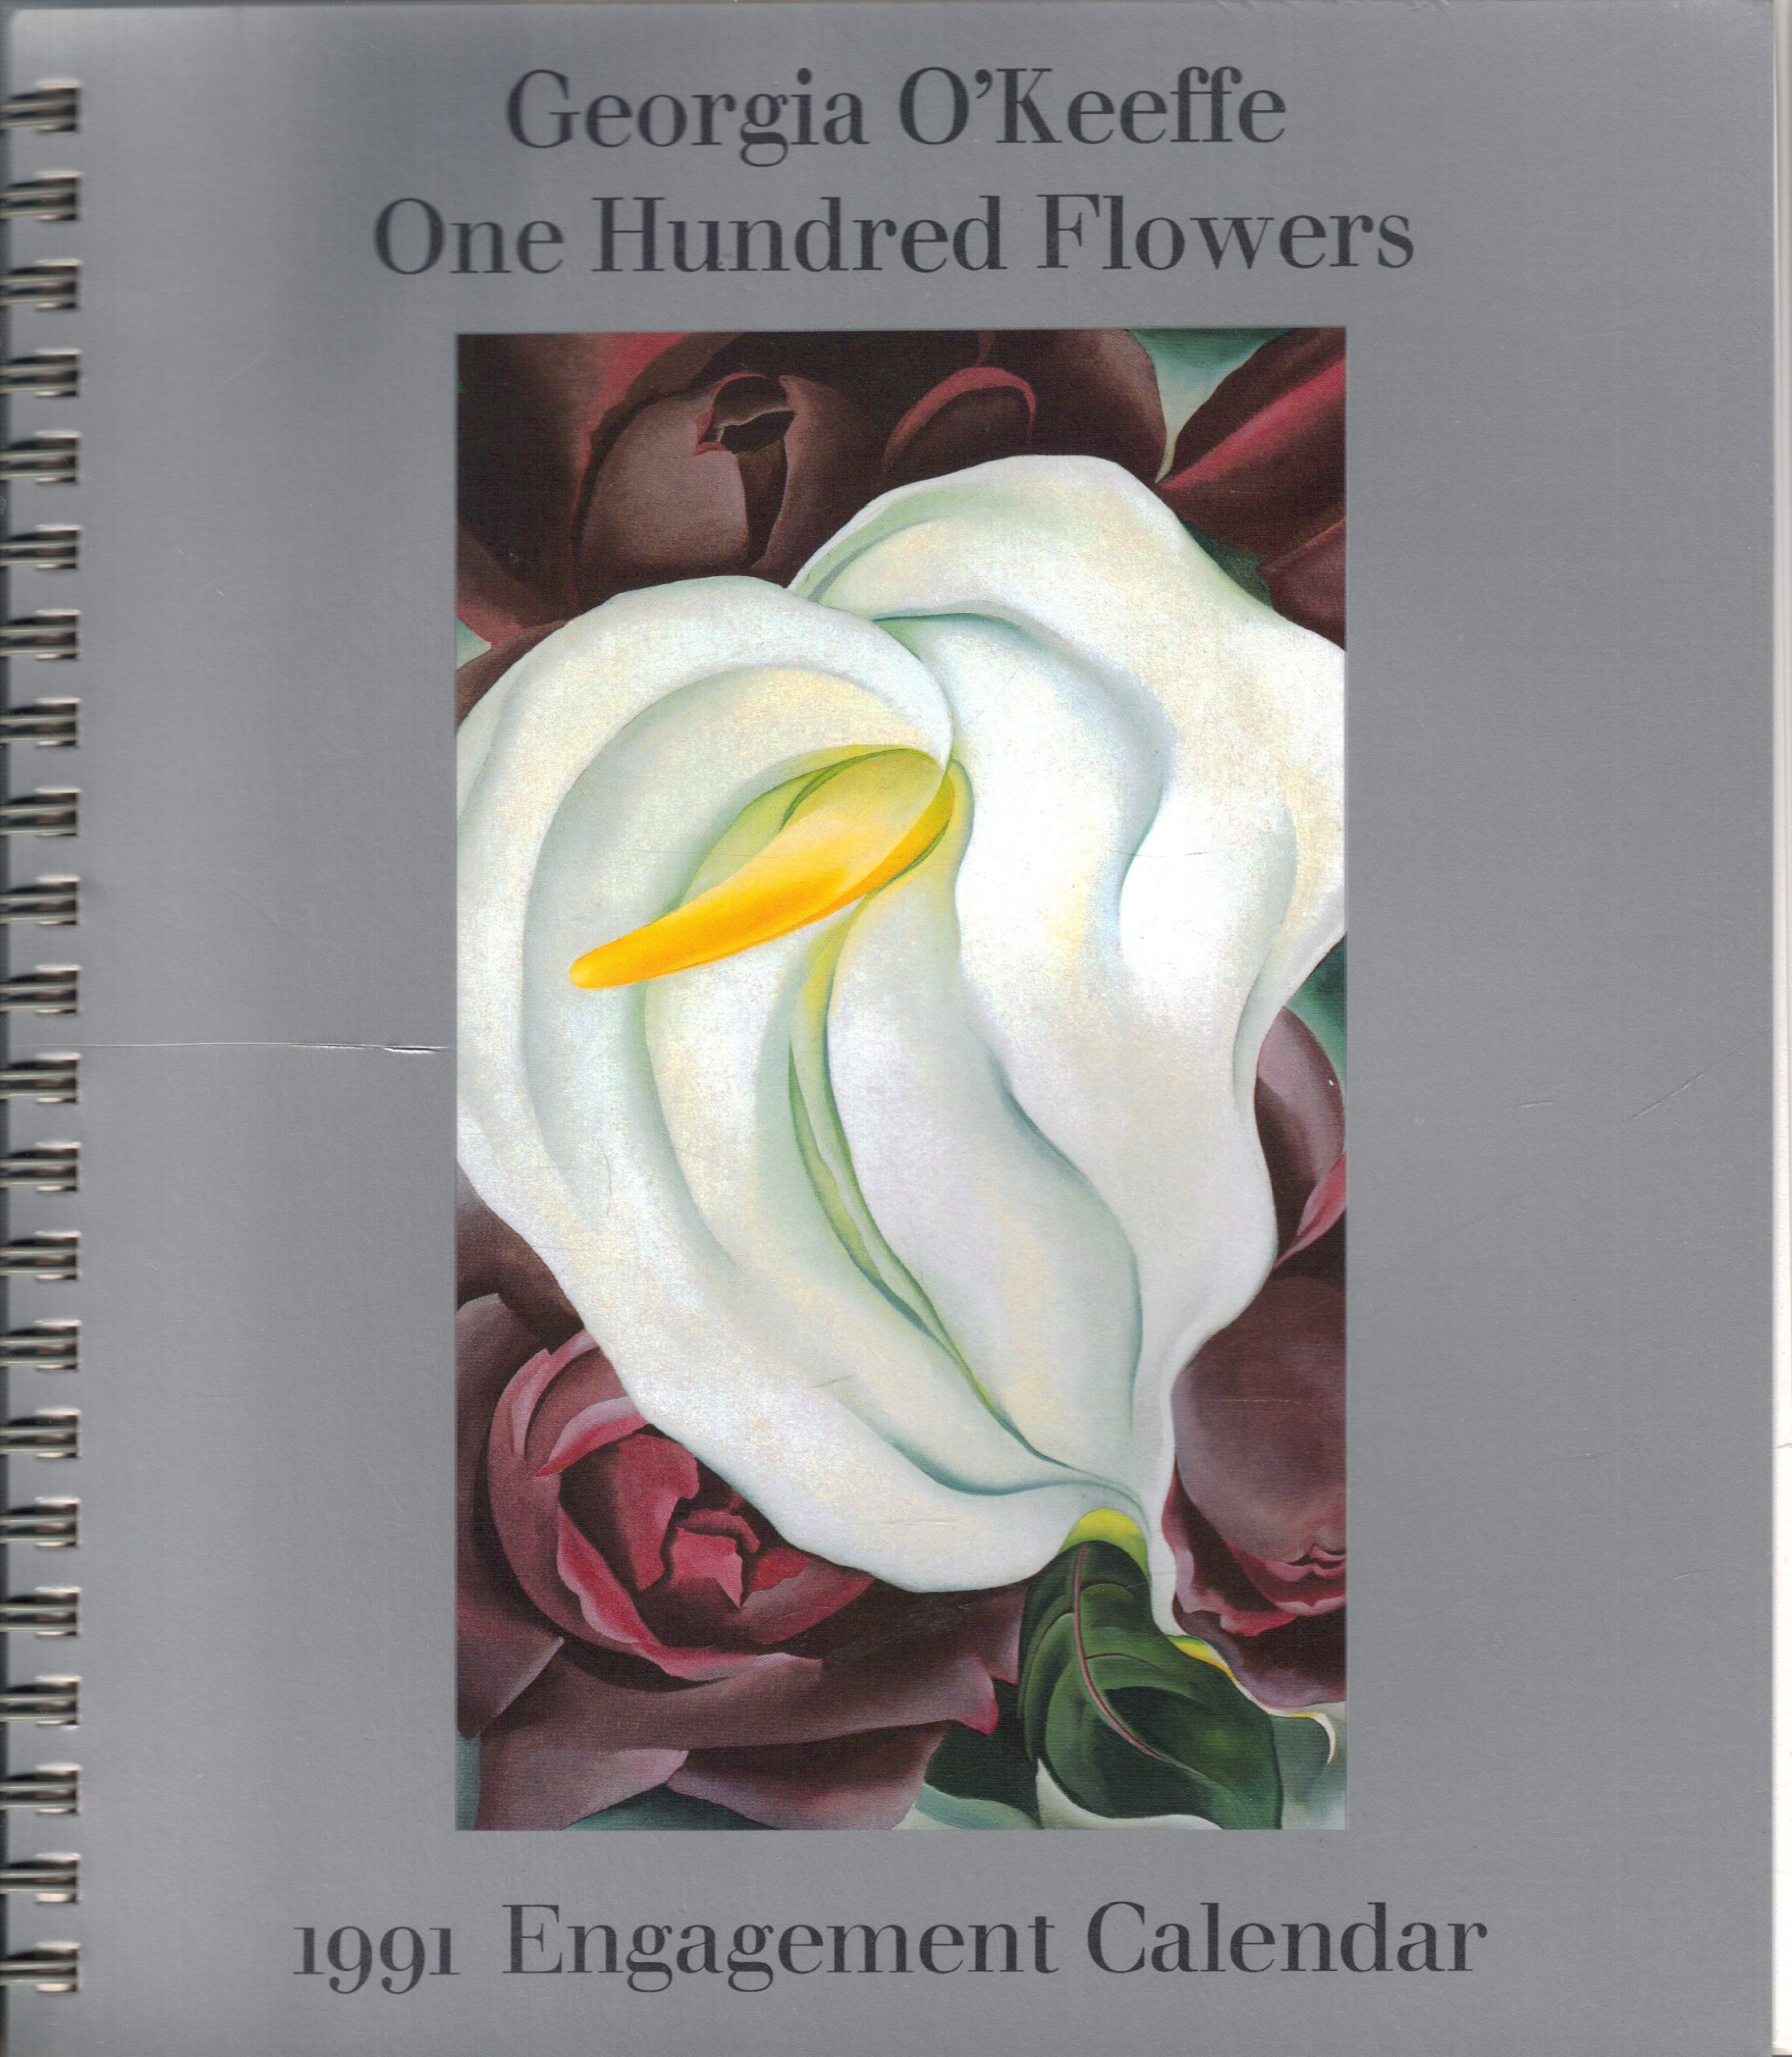 georgia okeeffe 100 flowers 1991 engagement calendar